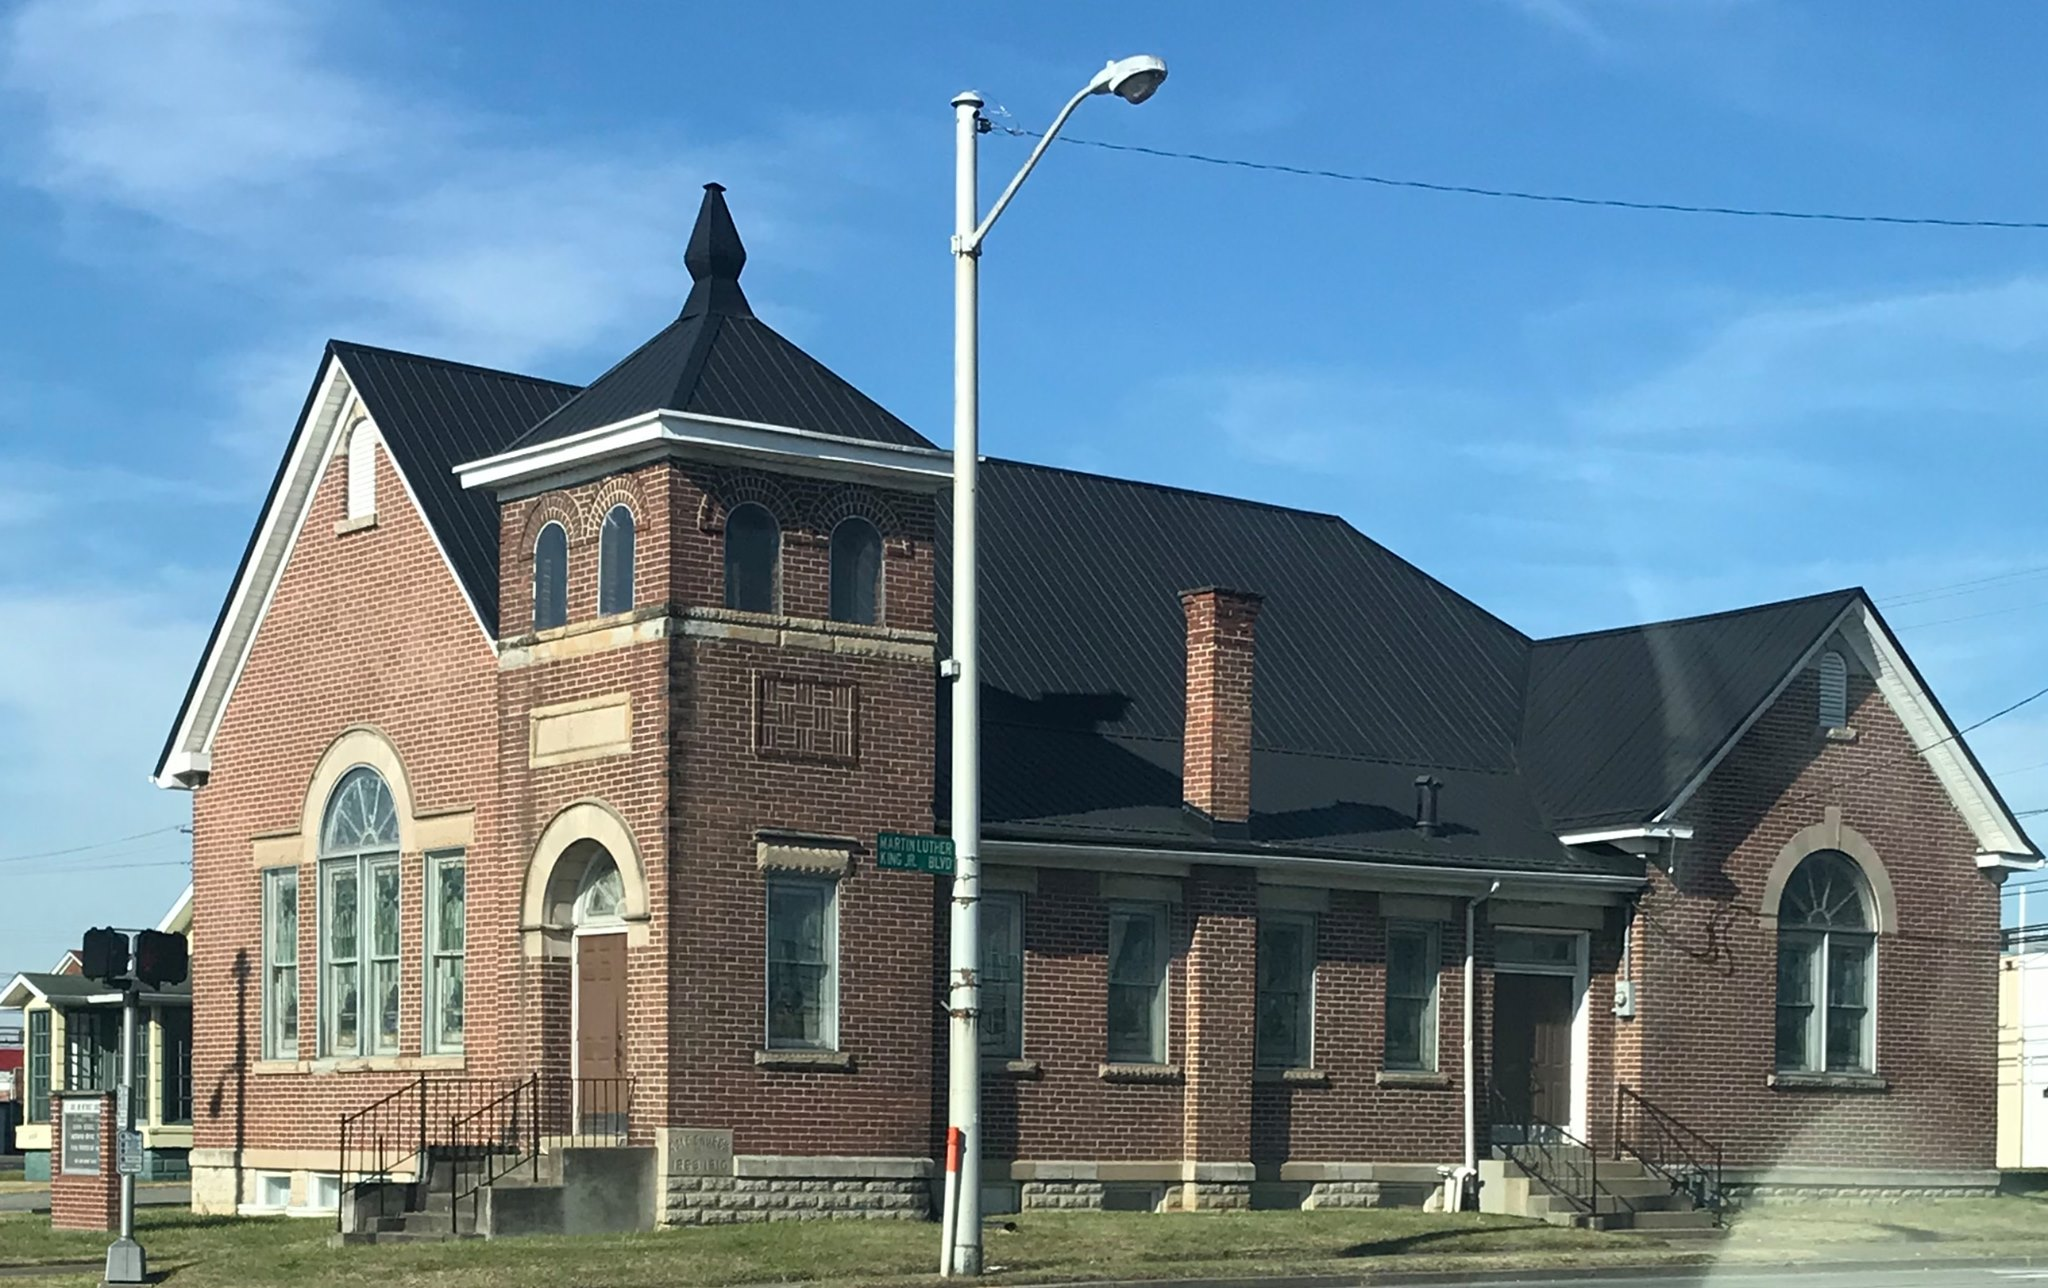 St. James AME Church in Ashland, KY